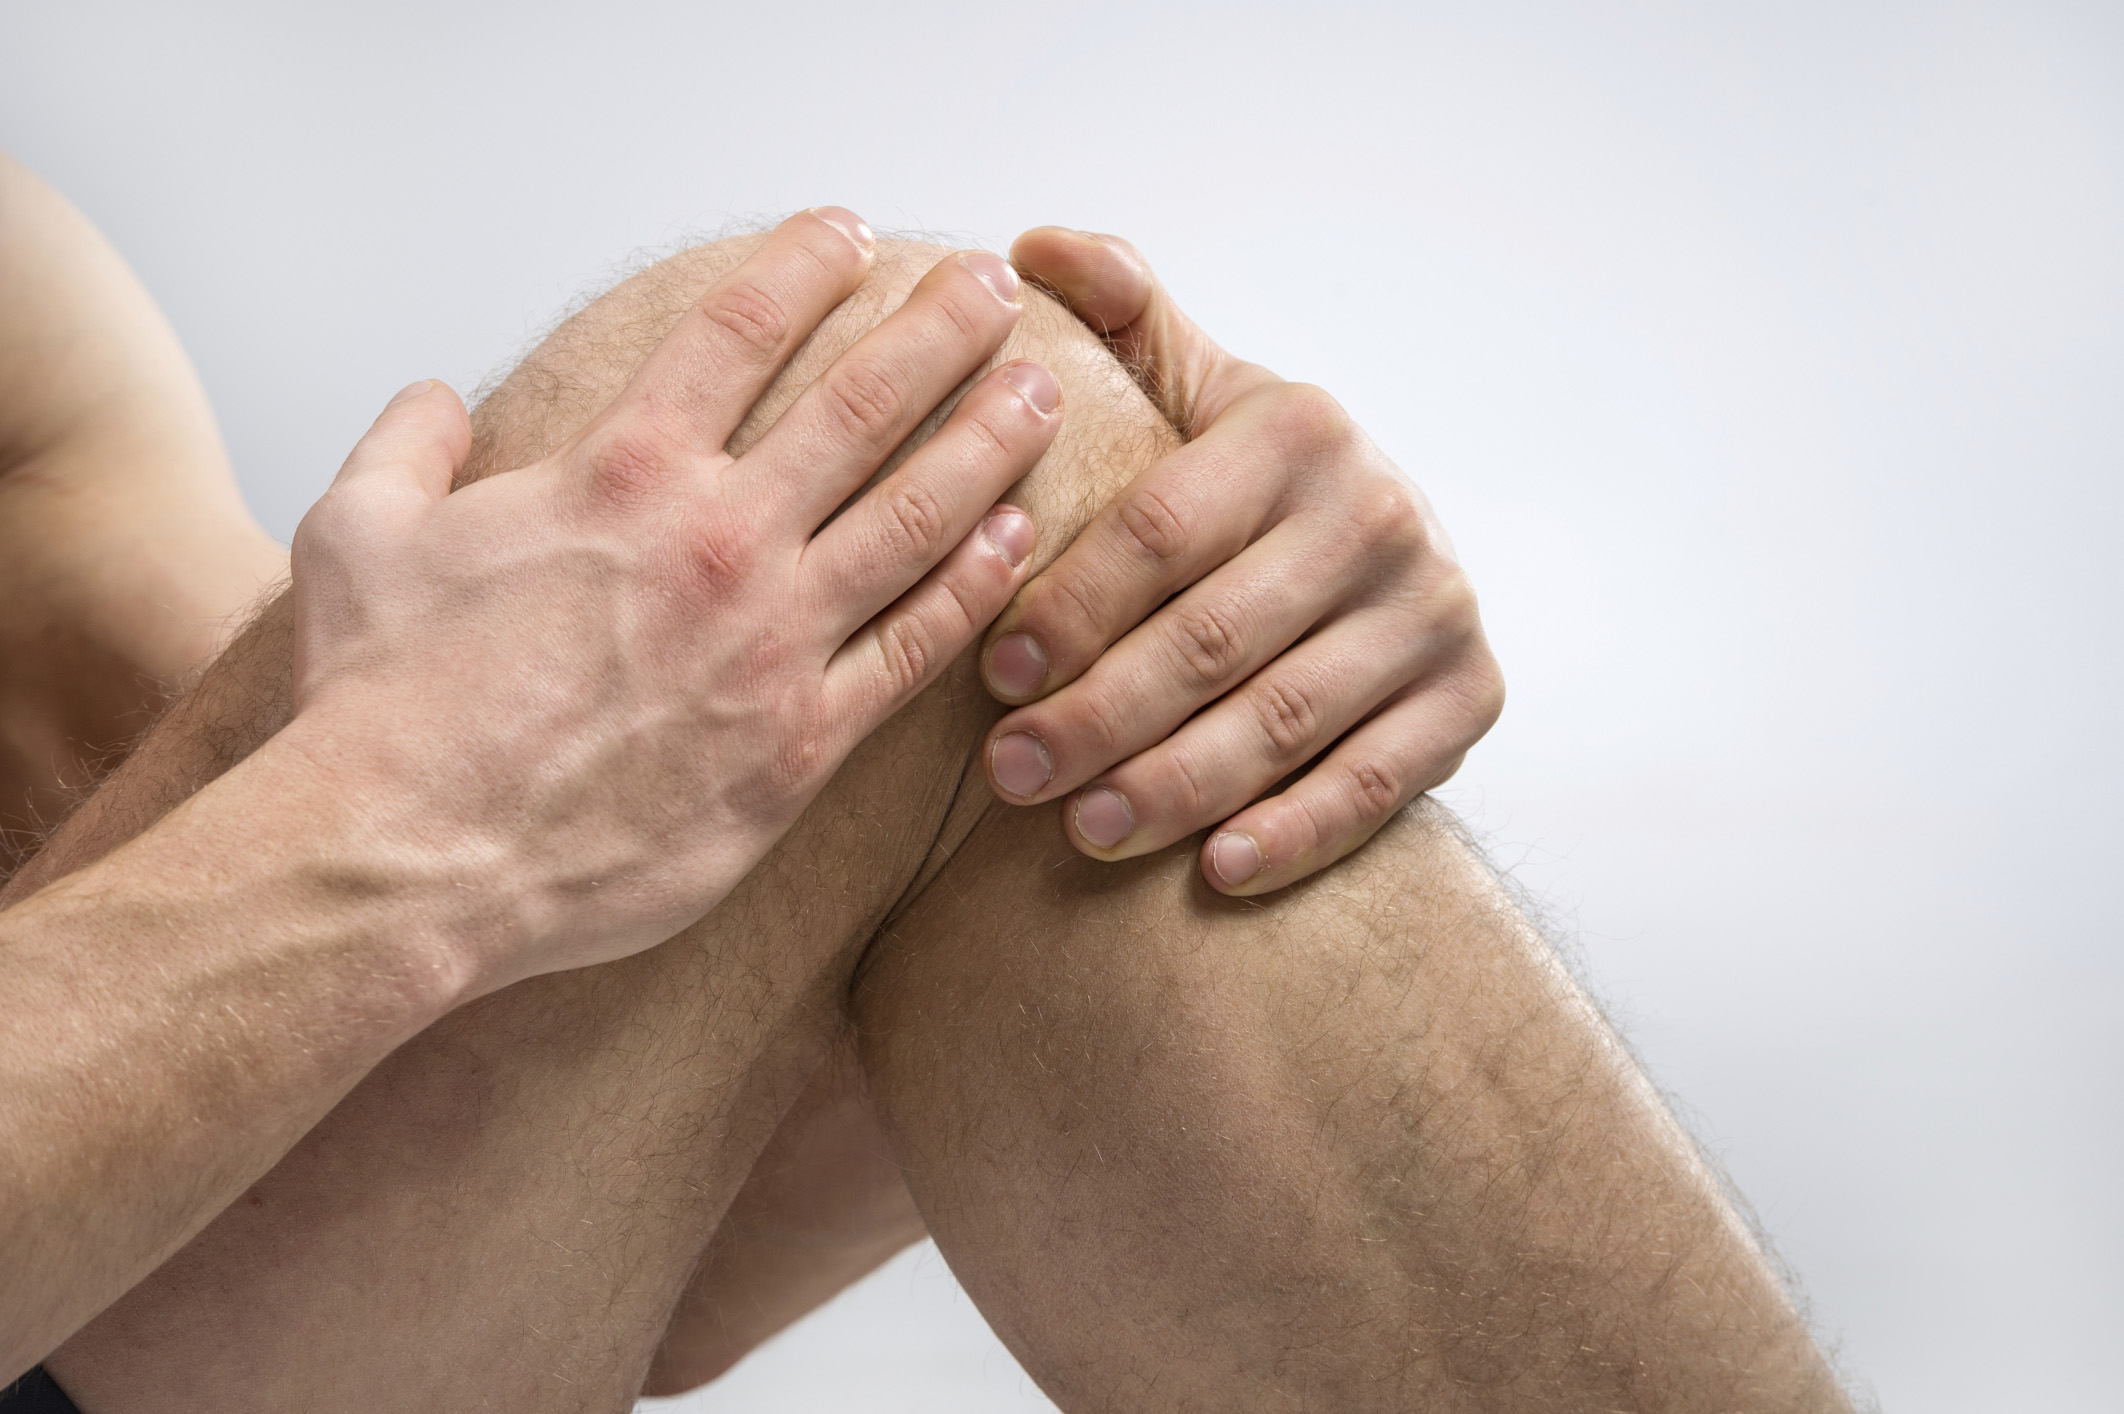 Arthritis uptick sparks concern about joint protection during youth